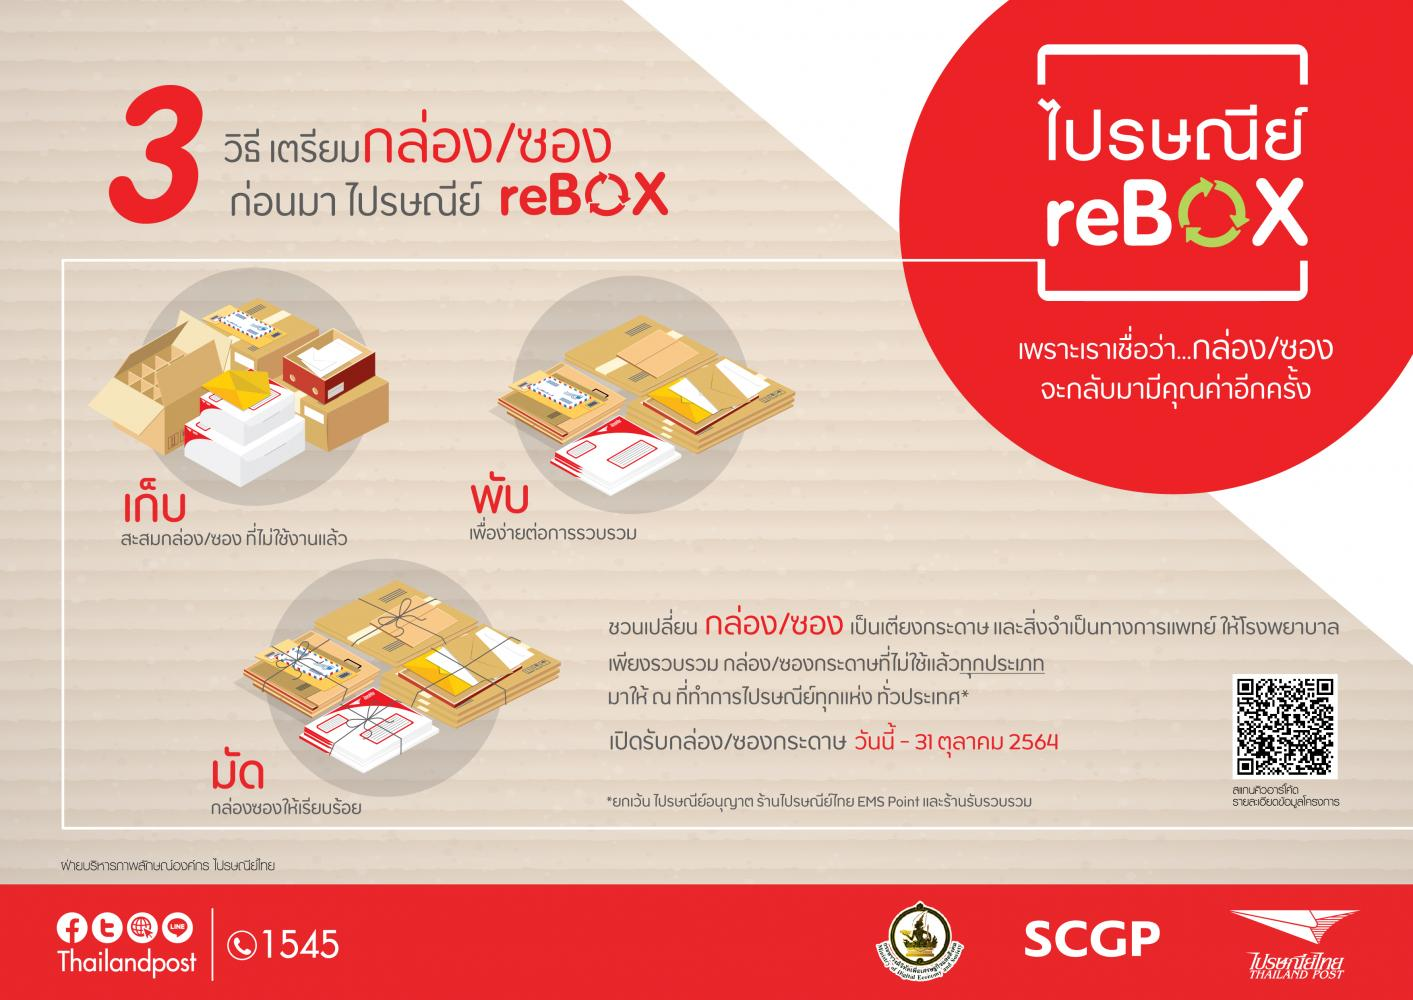 Thai Post wants your waste